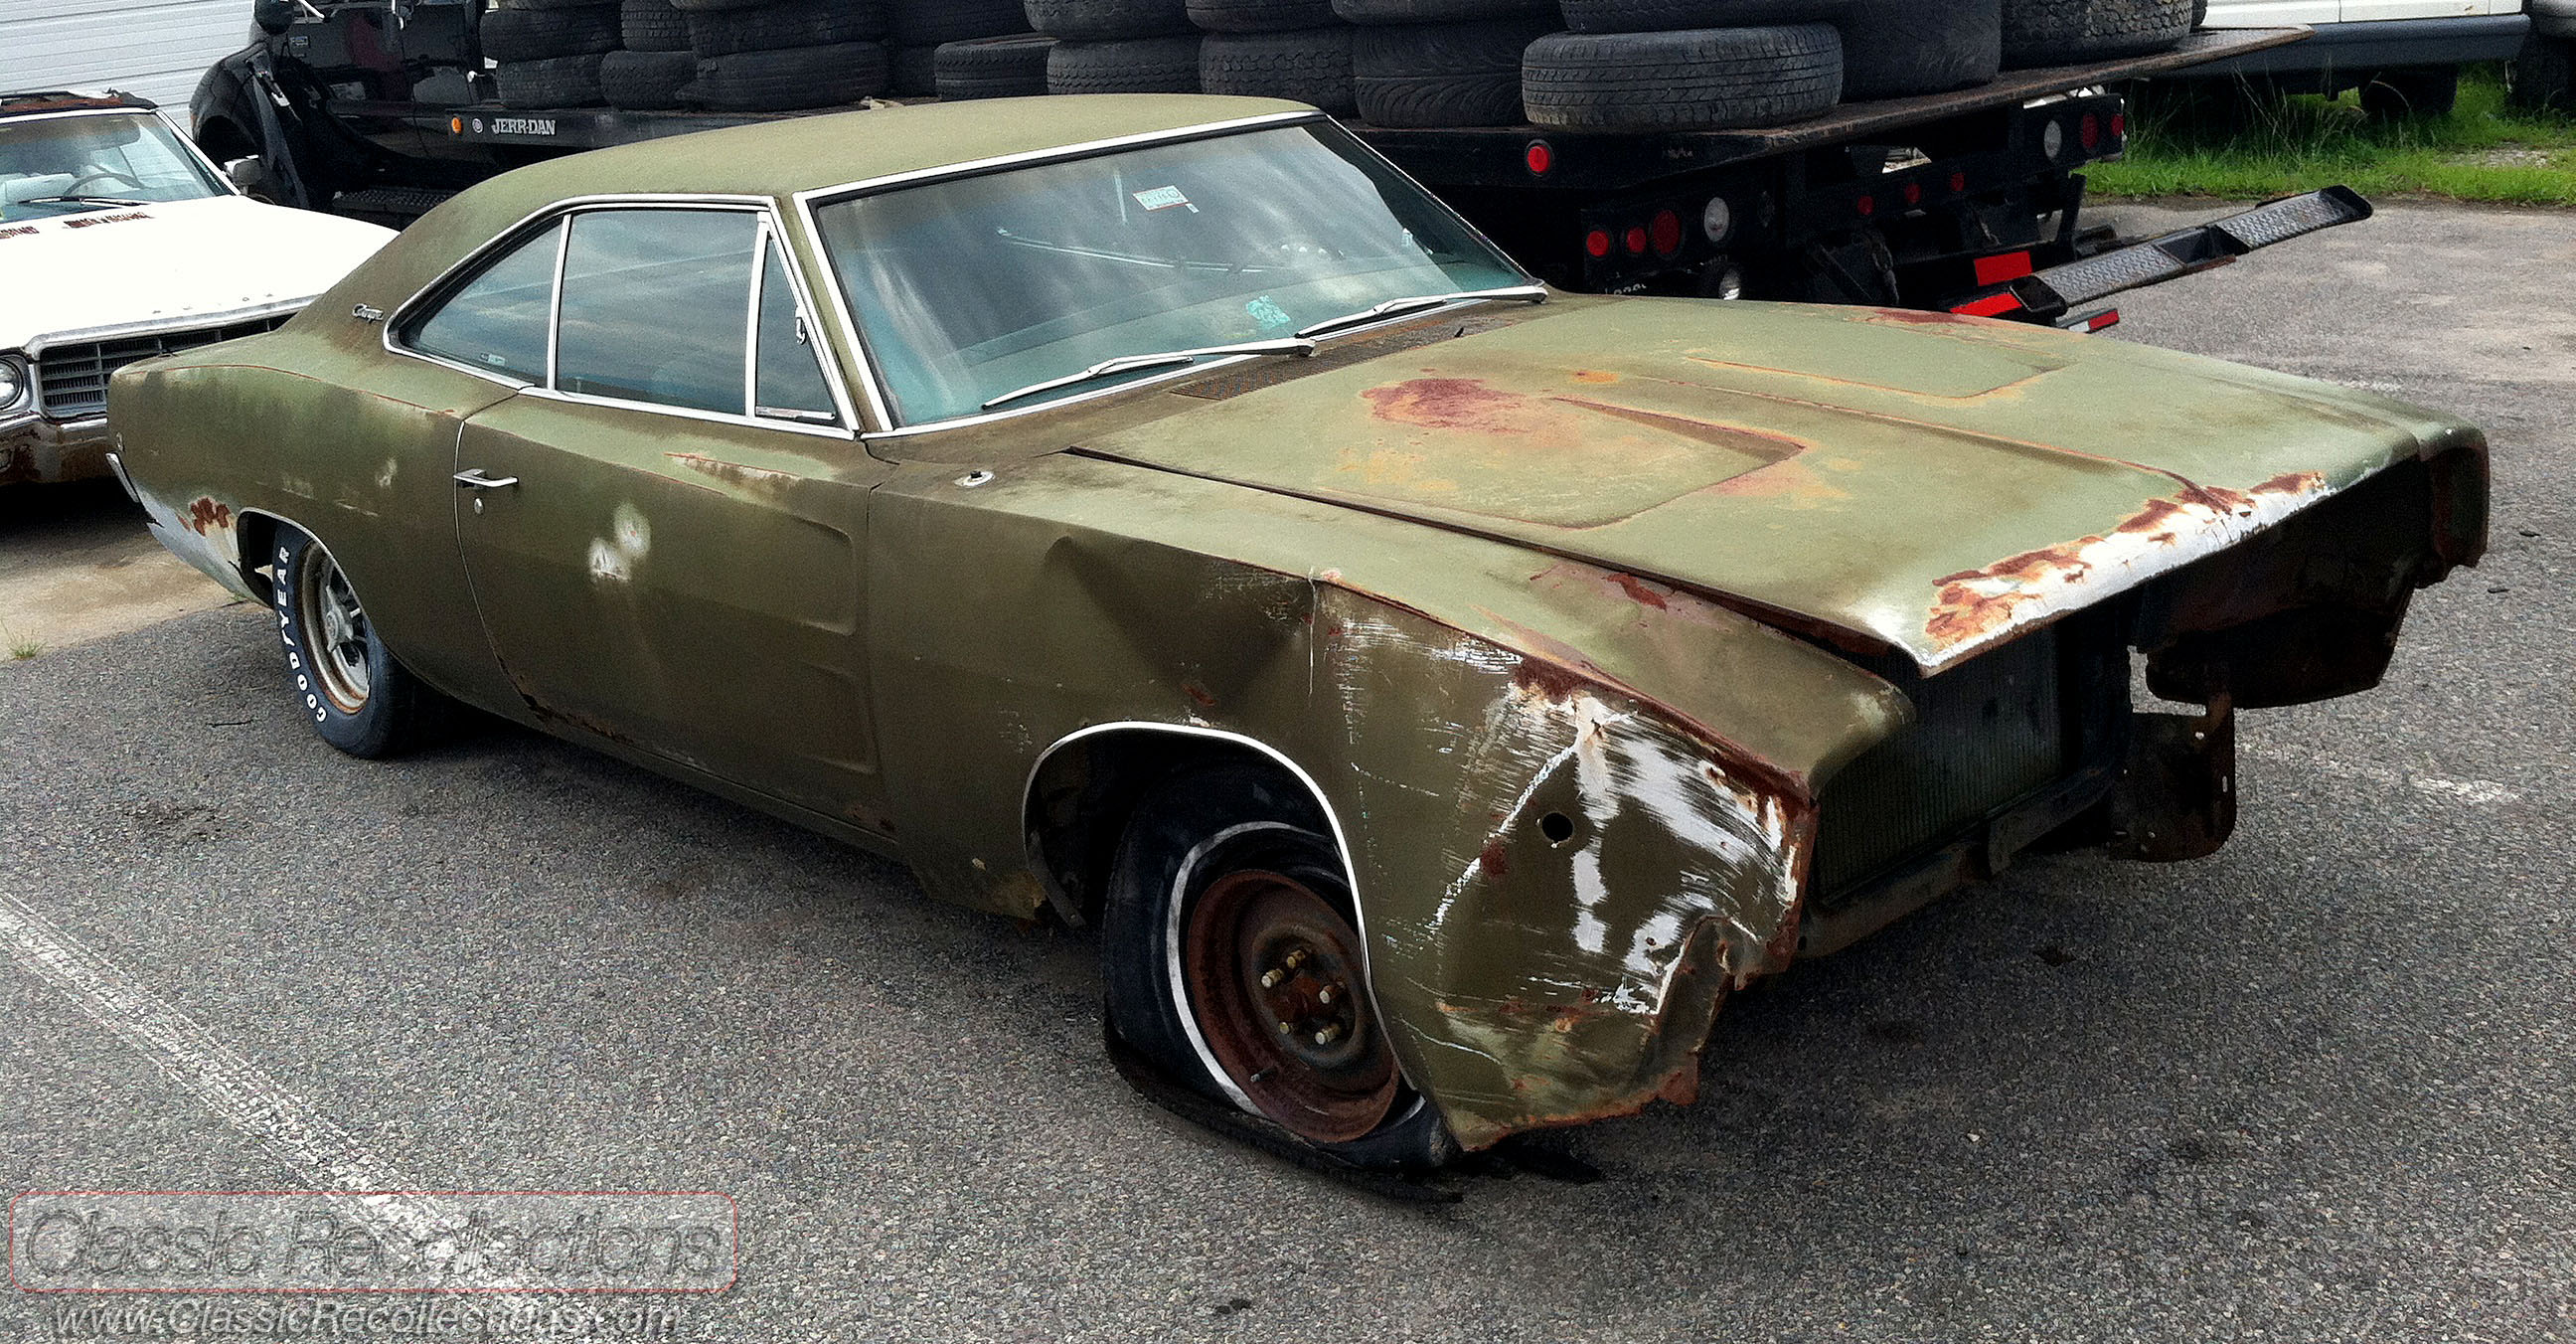 PROJECT CAR: 1968 Dodge Charger – Classic Recollections